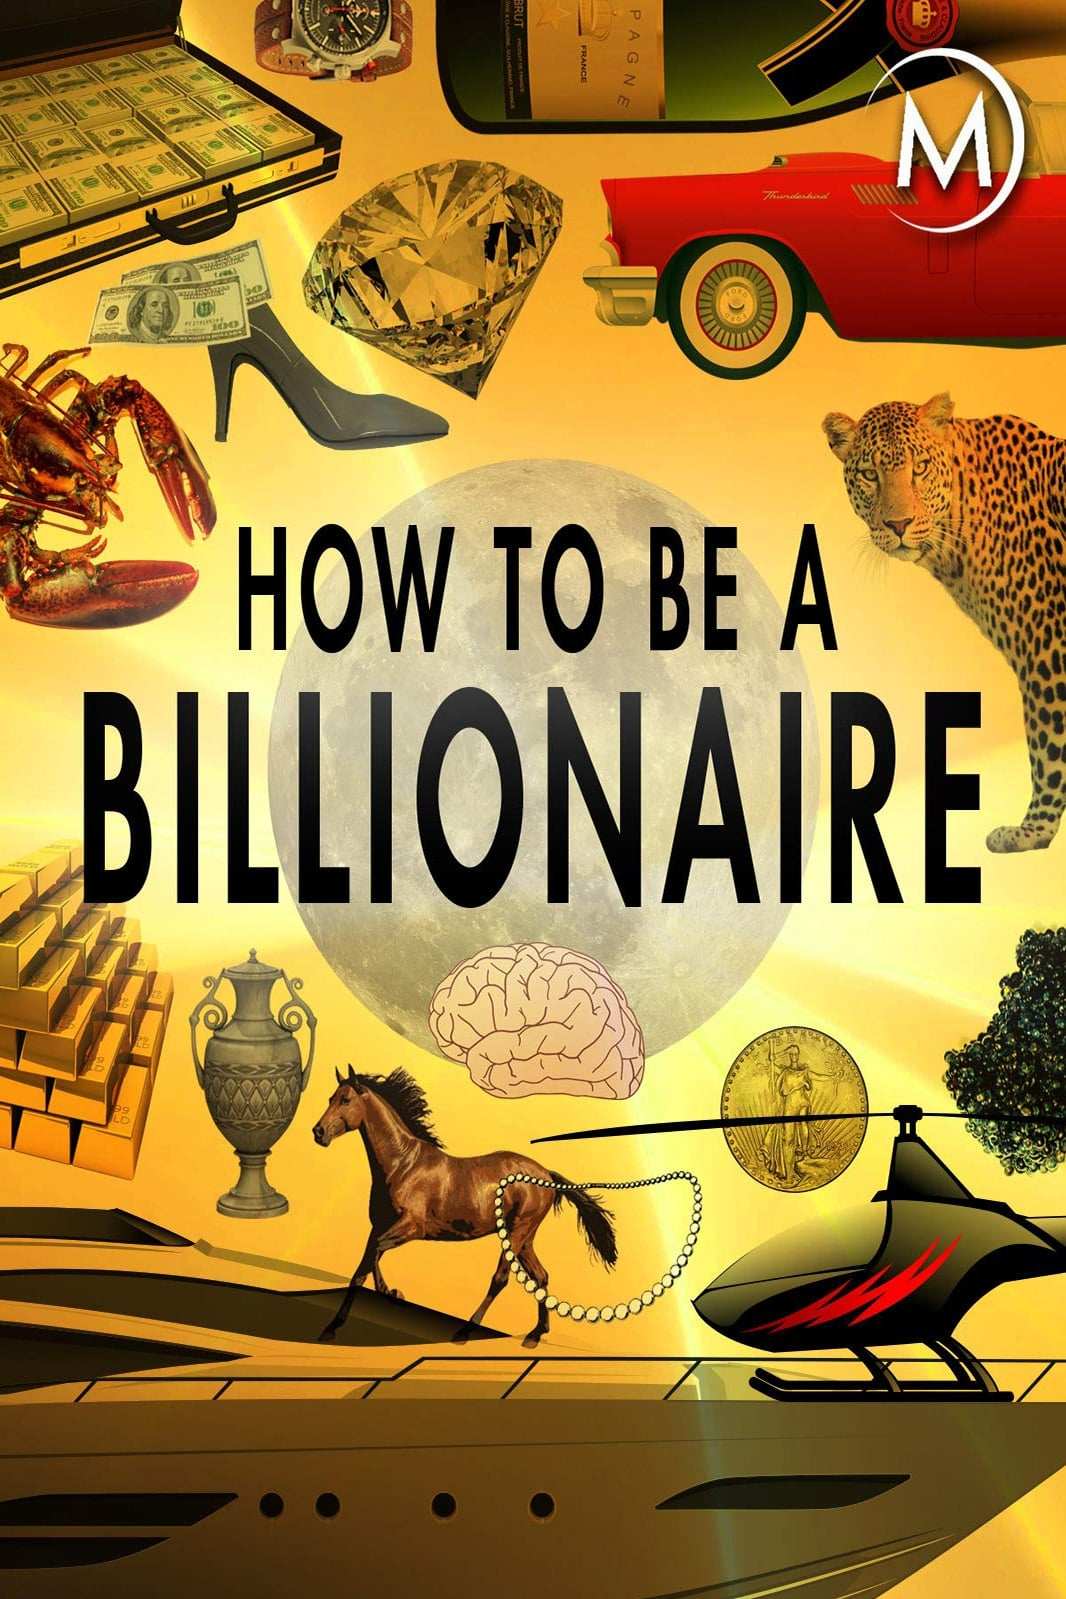 How to Be a Billionaire (2014)